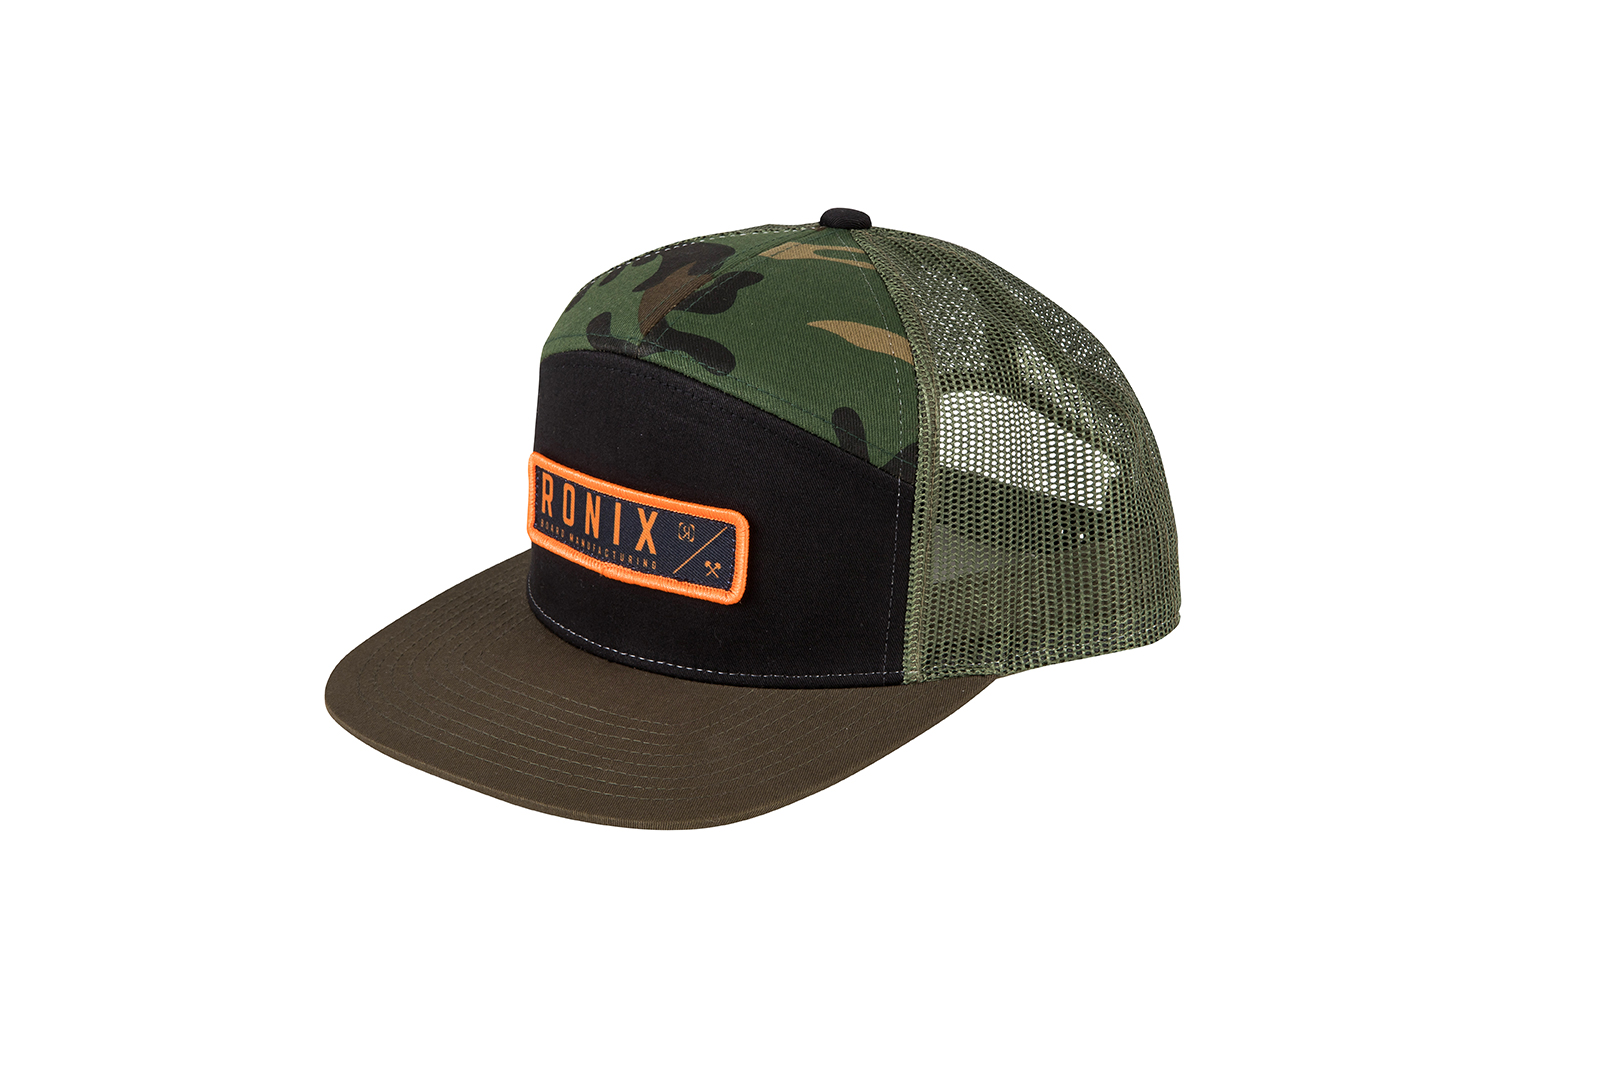 7 PANEL HUNTER SNAP BACK HAT OSFA RONIX 2018